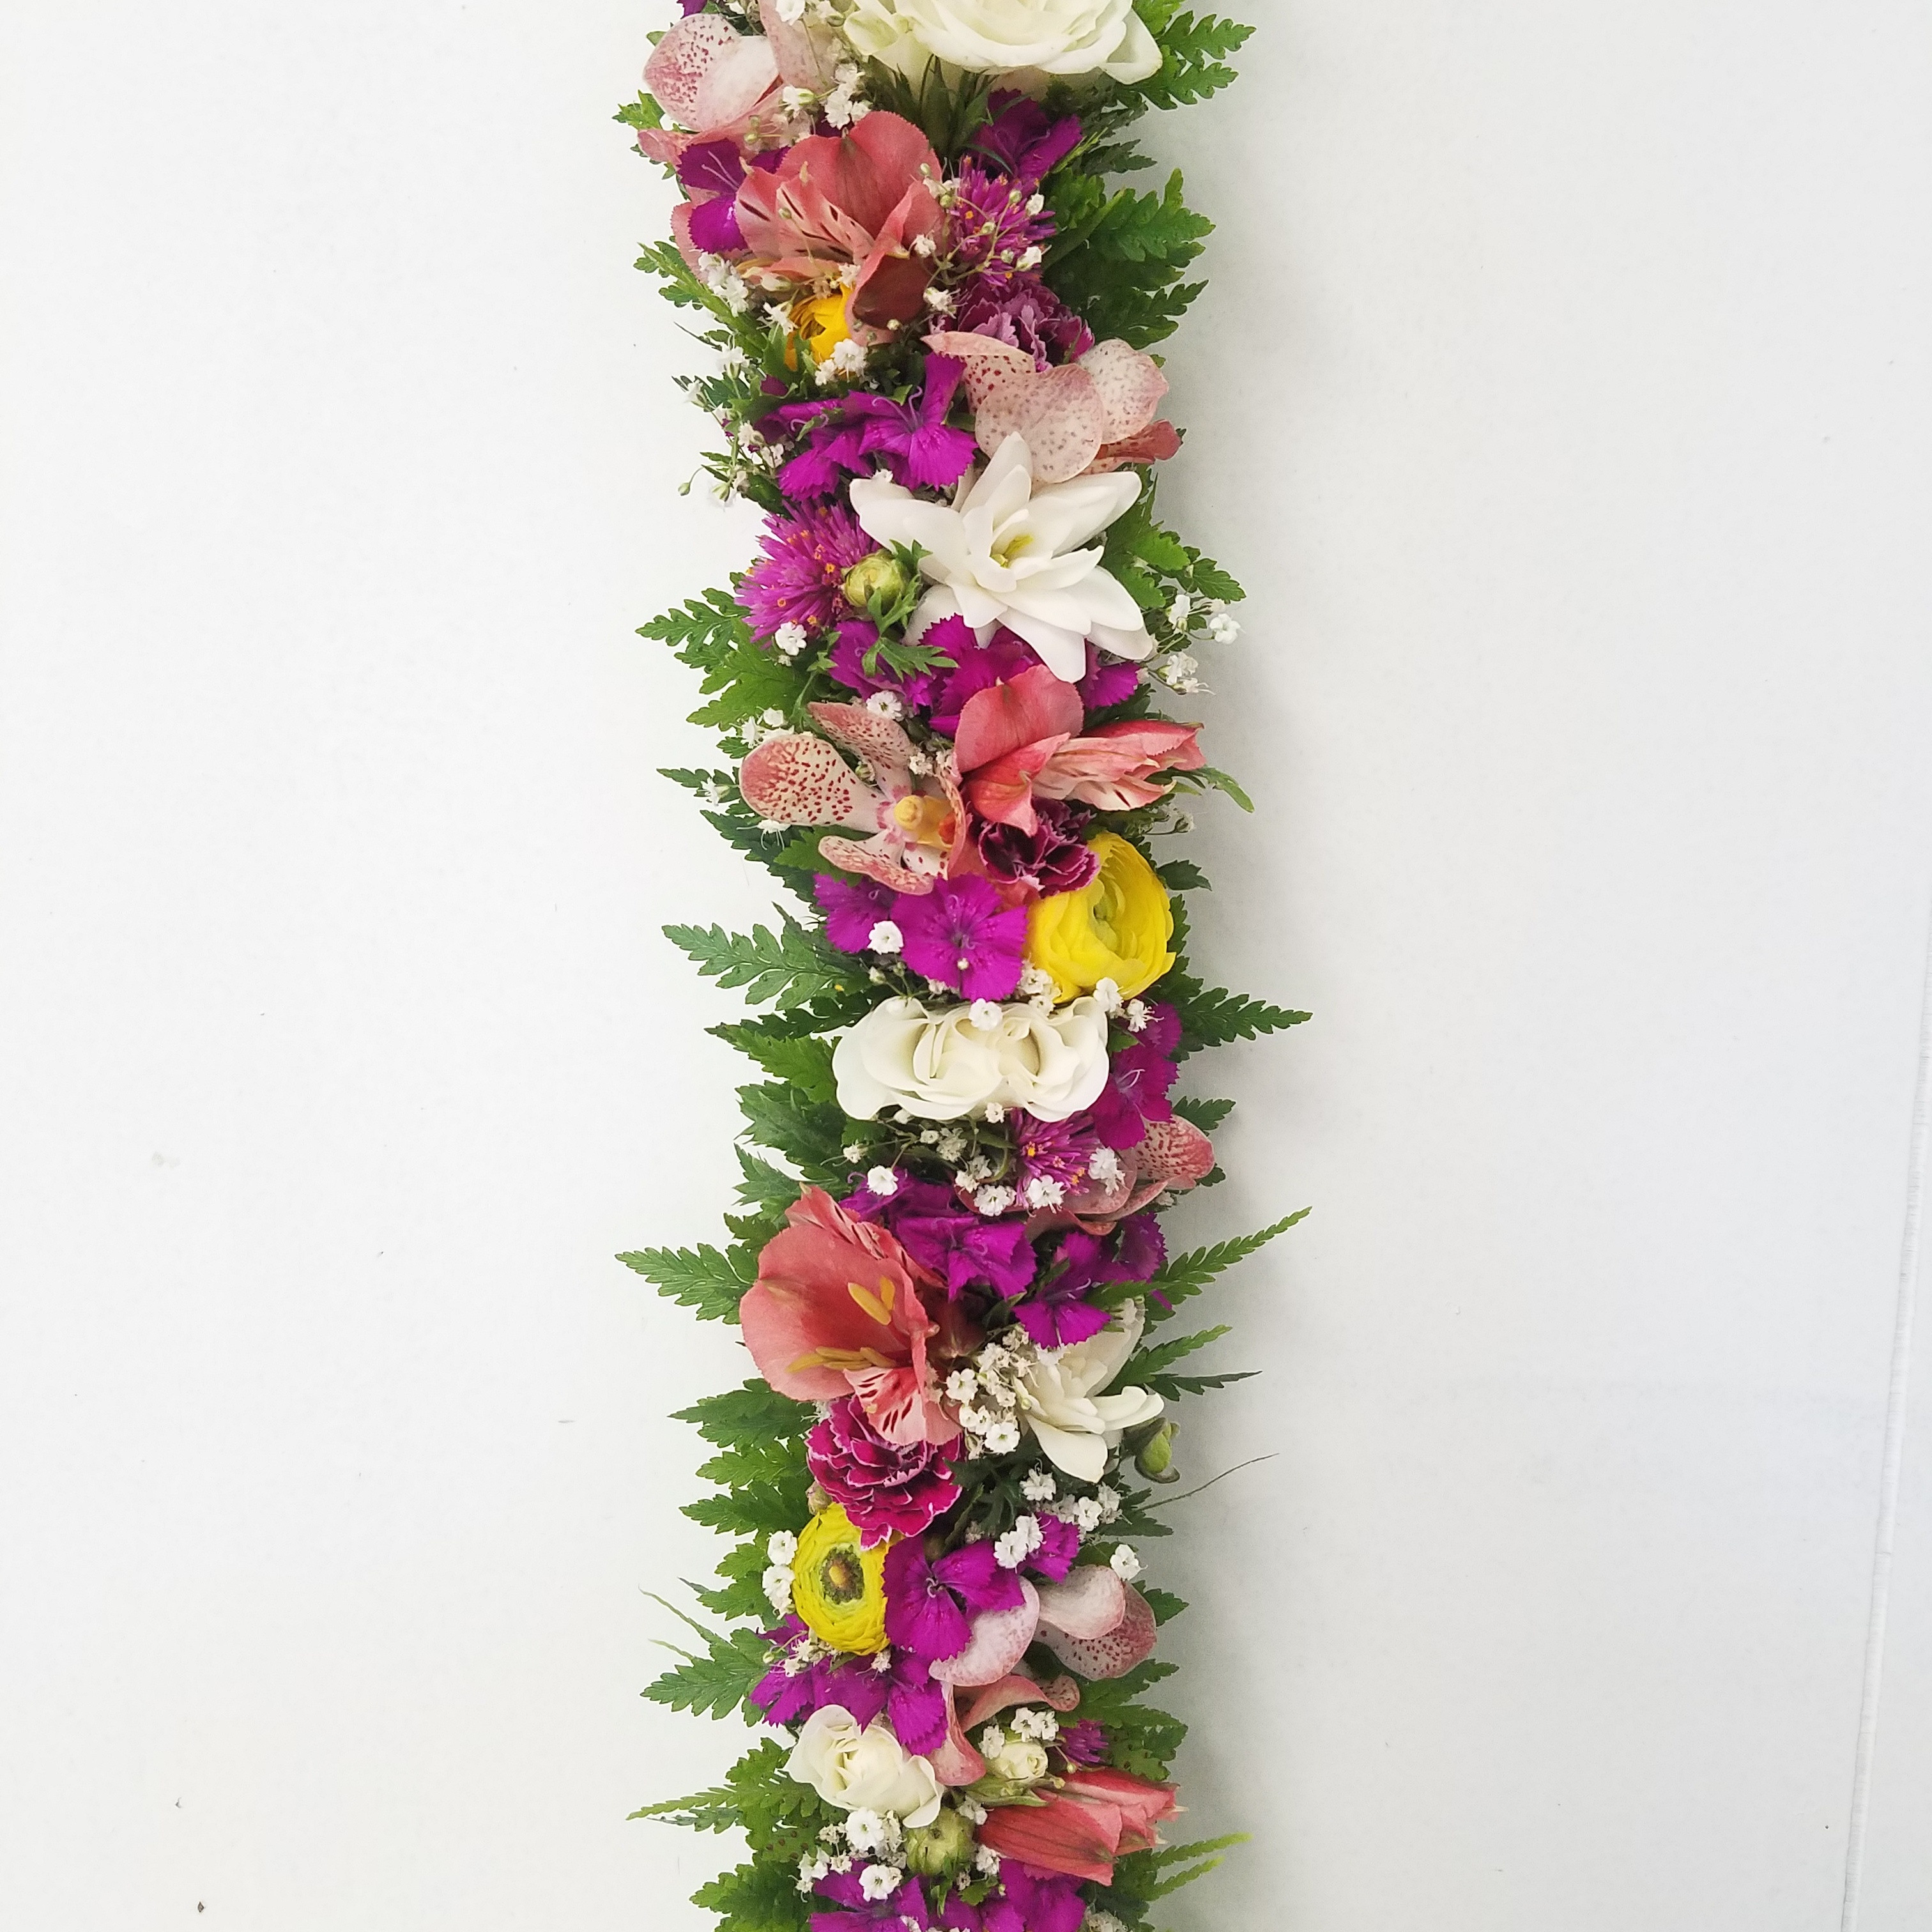 Lei Poo In Purples Pinks Whites And Yellows